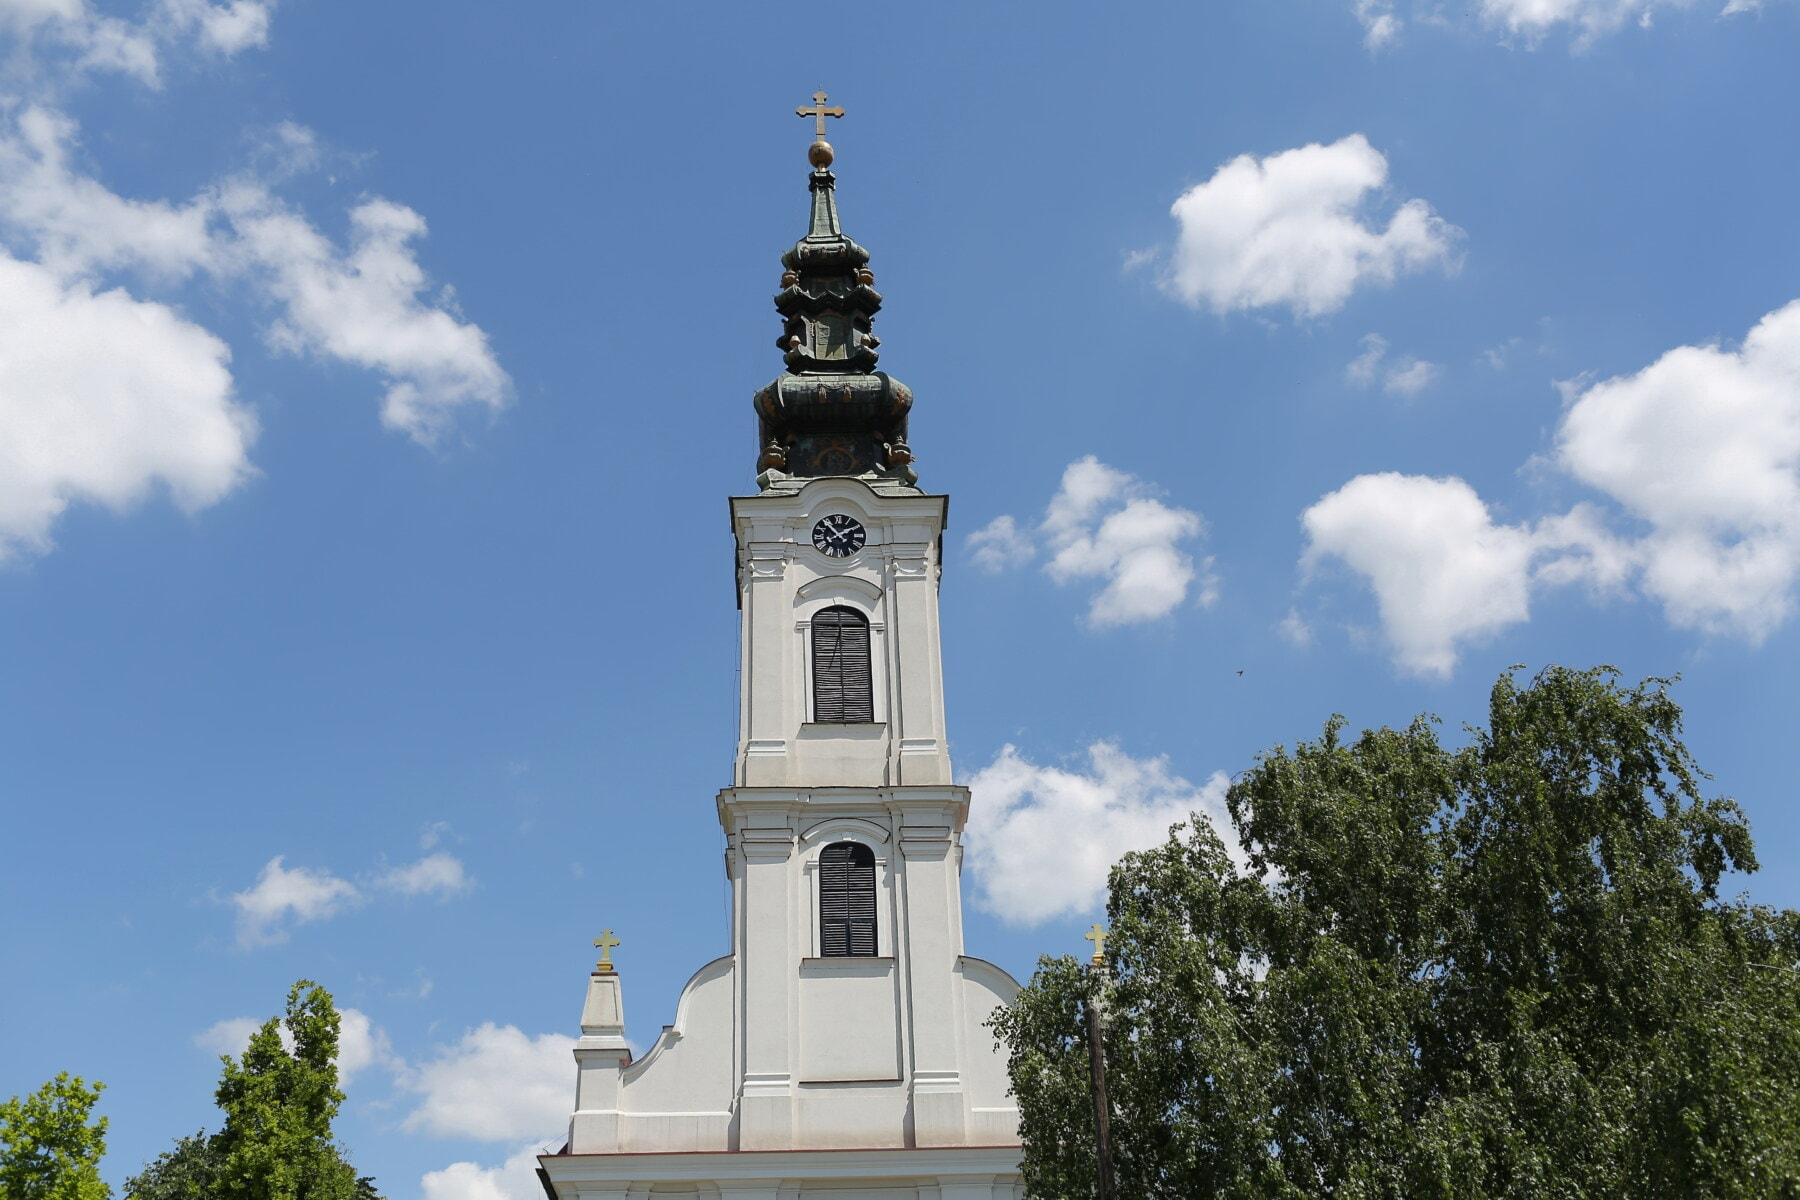 orthodox, church tower, church, tower, white, blue sky, building, religion, architecture, covering